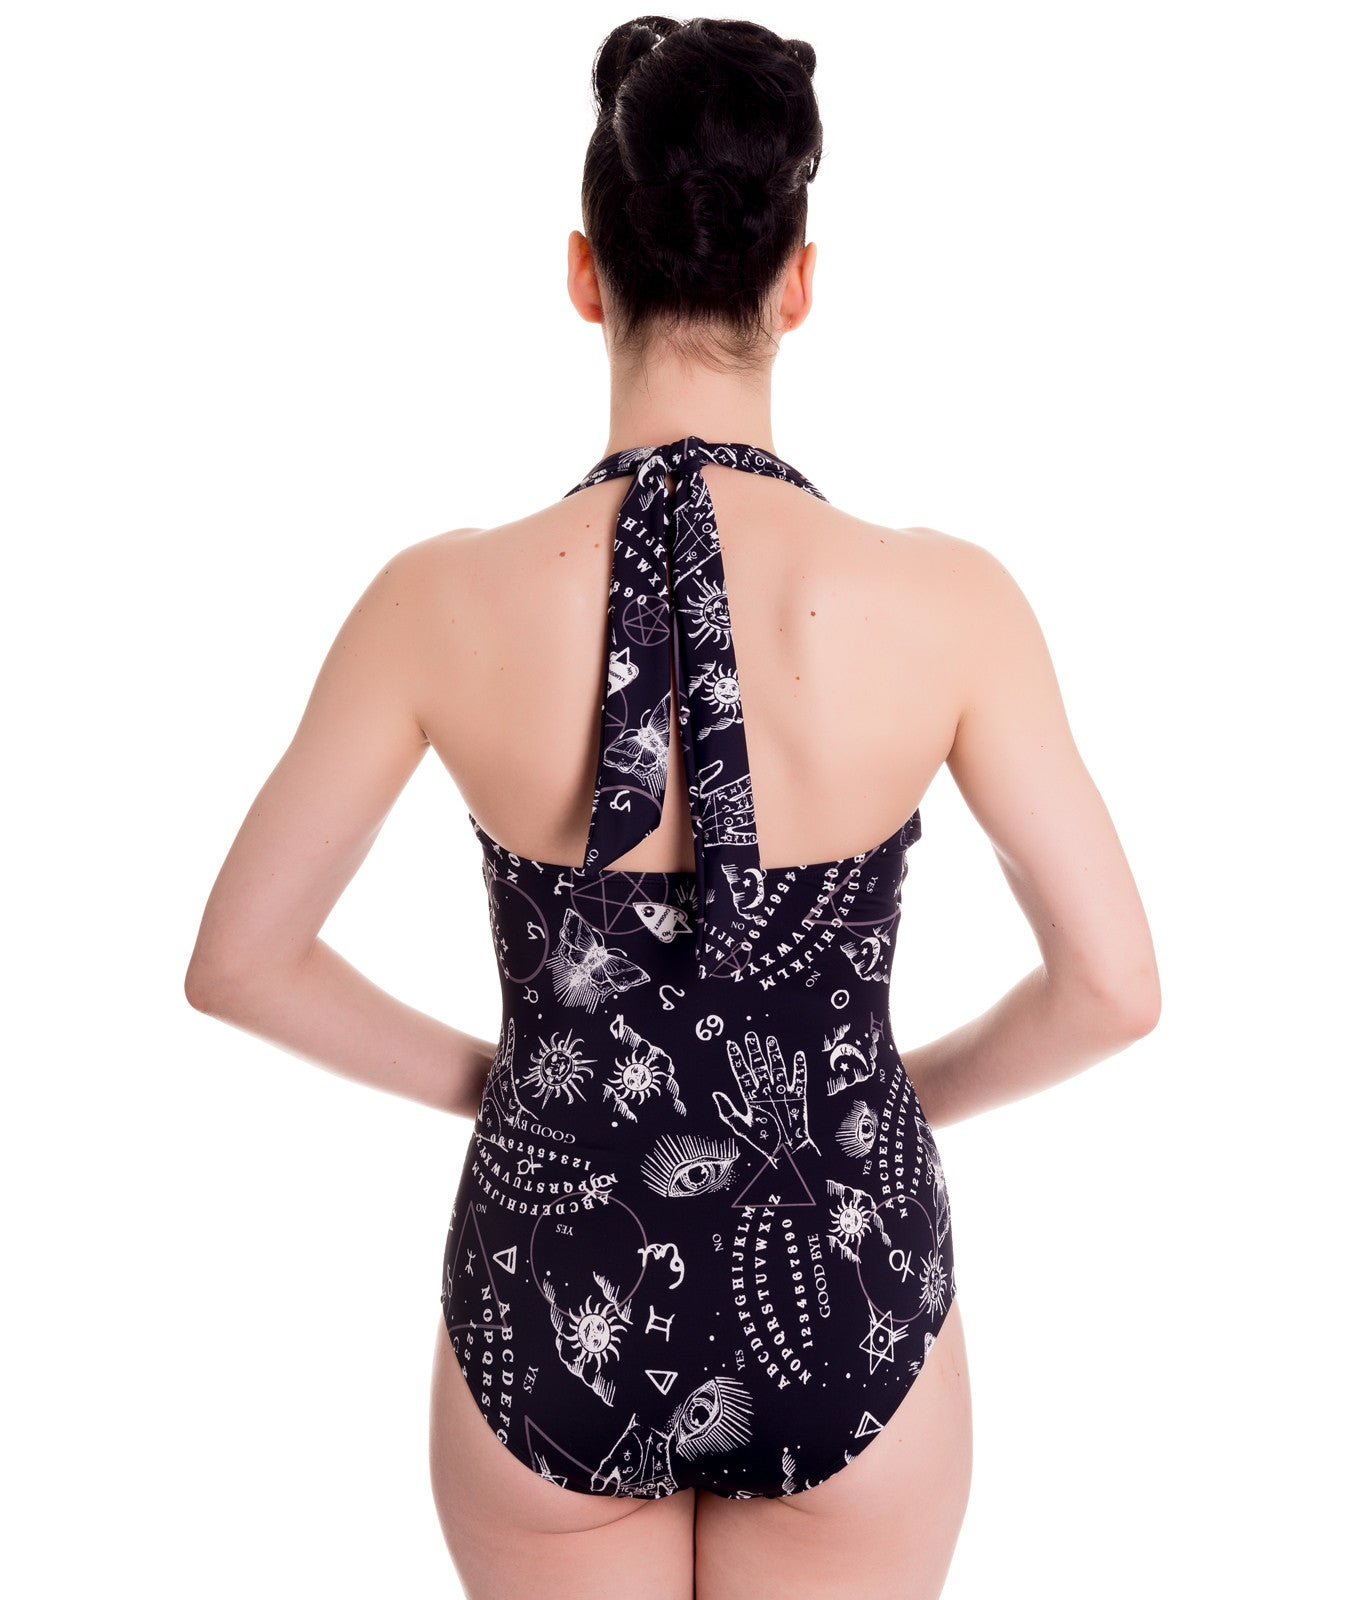 Spin Doctor - OUIJA PRINT HALTER STYLE SWIMSUIT - FETISH